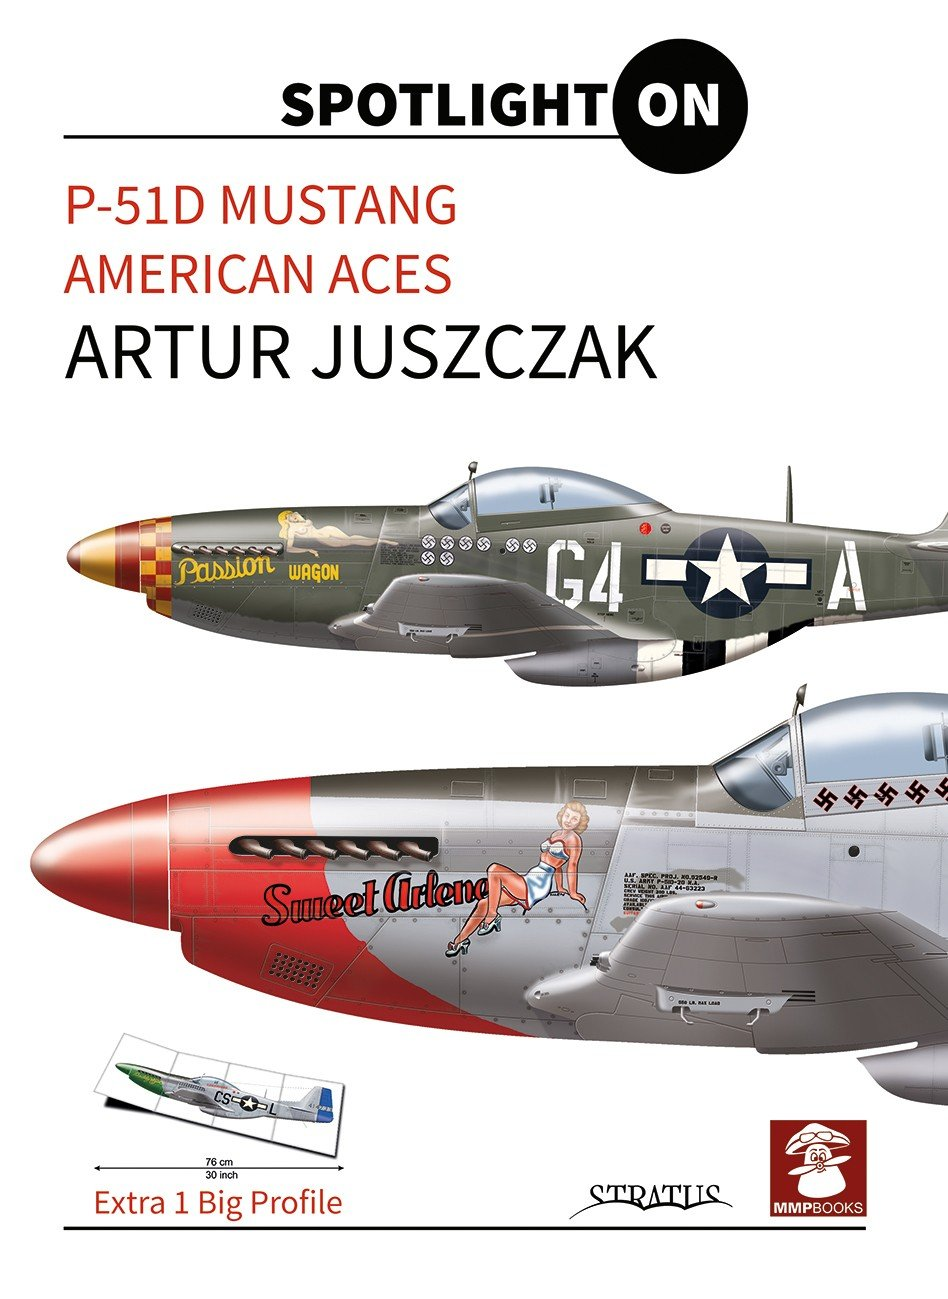 P-51D Mustang American Aces